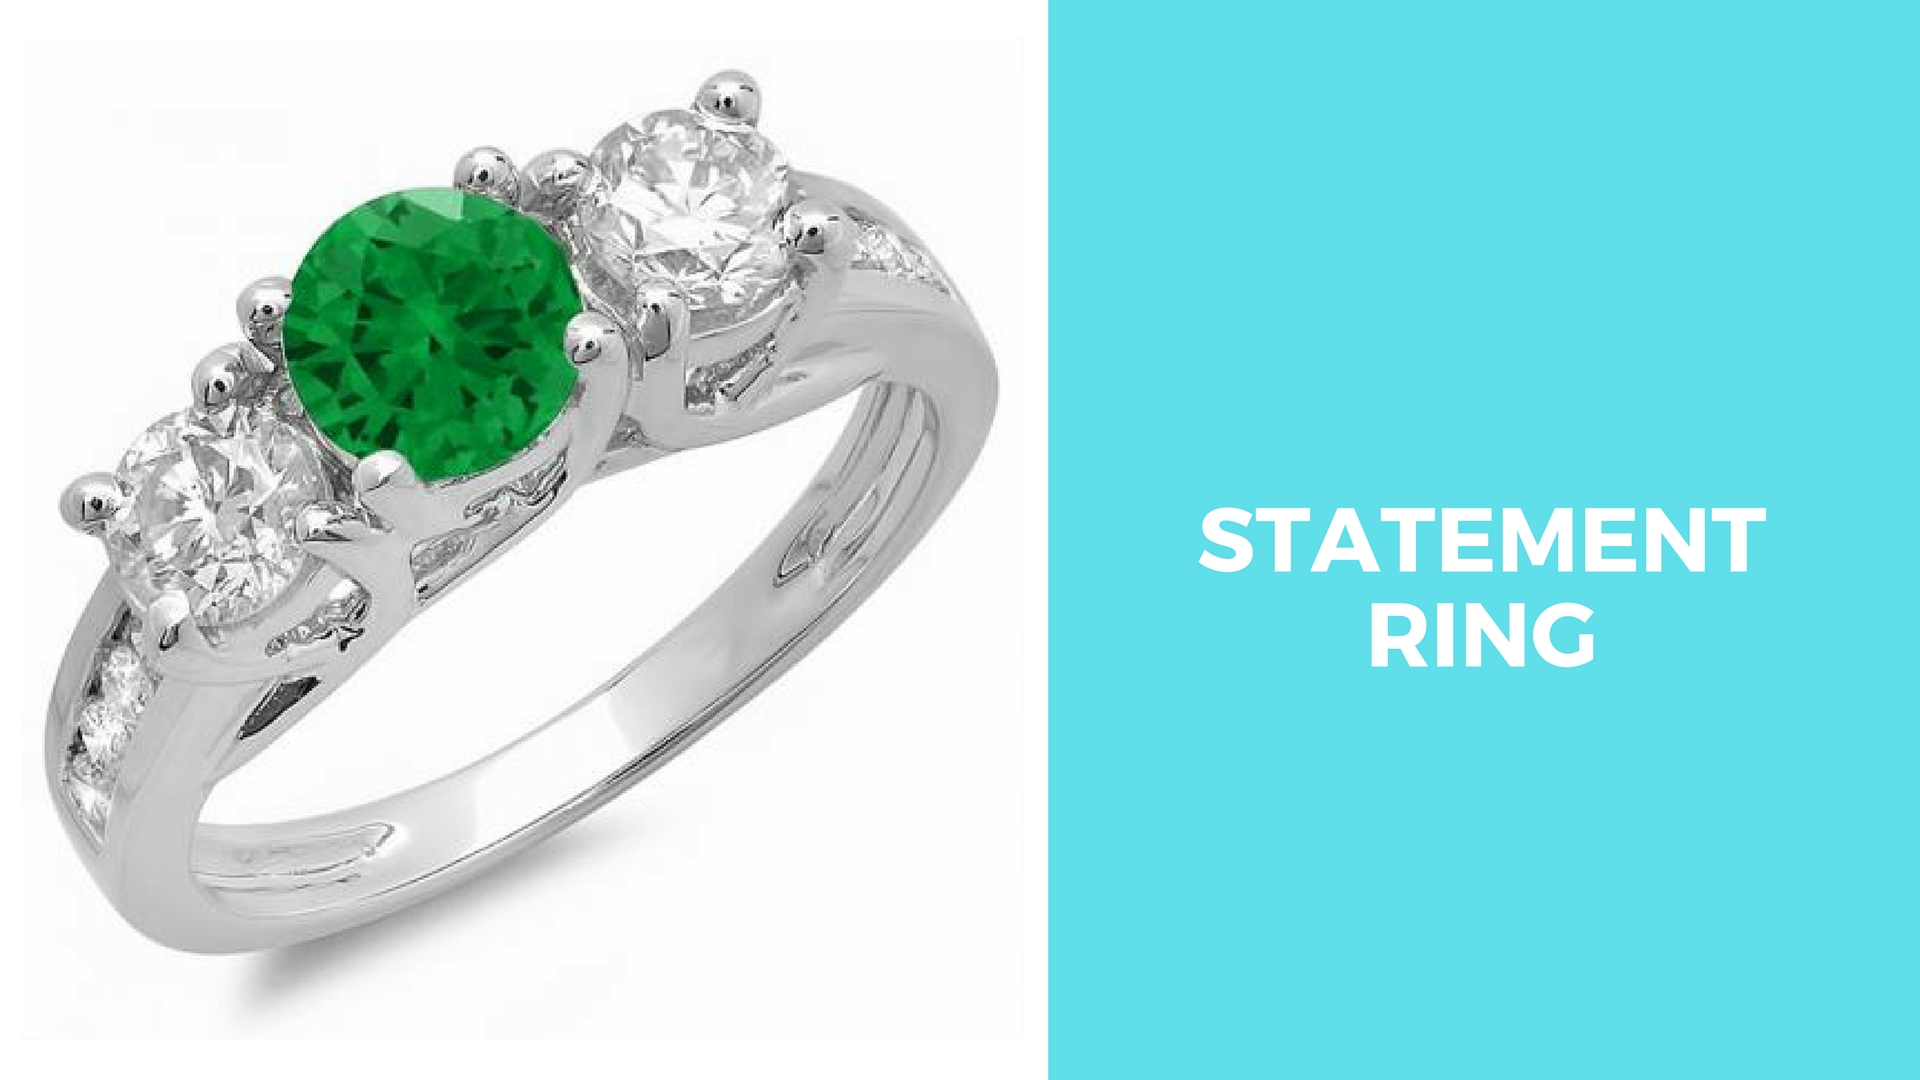 Statement Ring - Must Have Jewelry for women